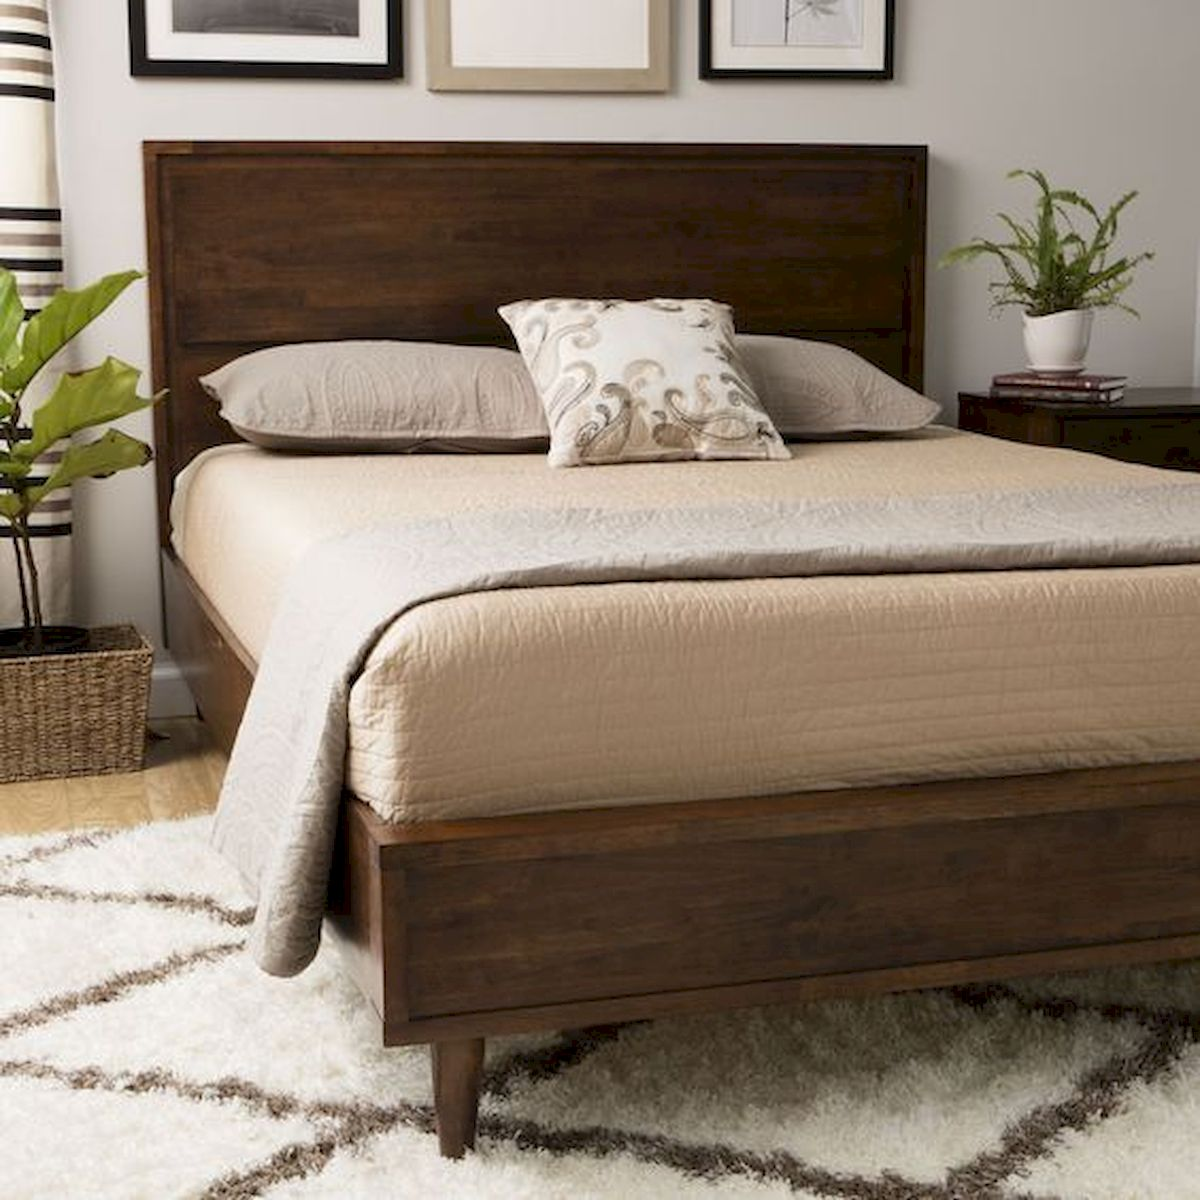 69 Best Farmhouse Bedding Decor Ideas And Remodel (61)